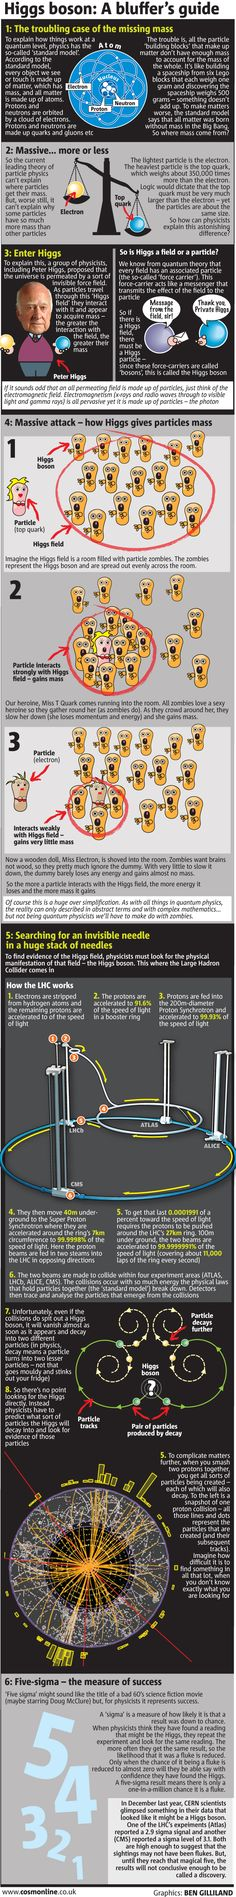 Infographic: Everything you need to know about the Higgs